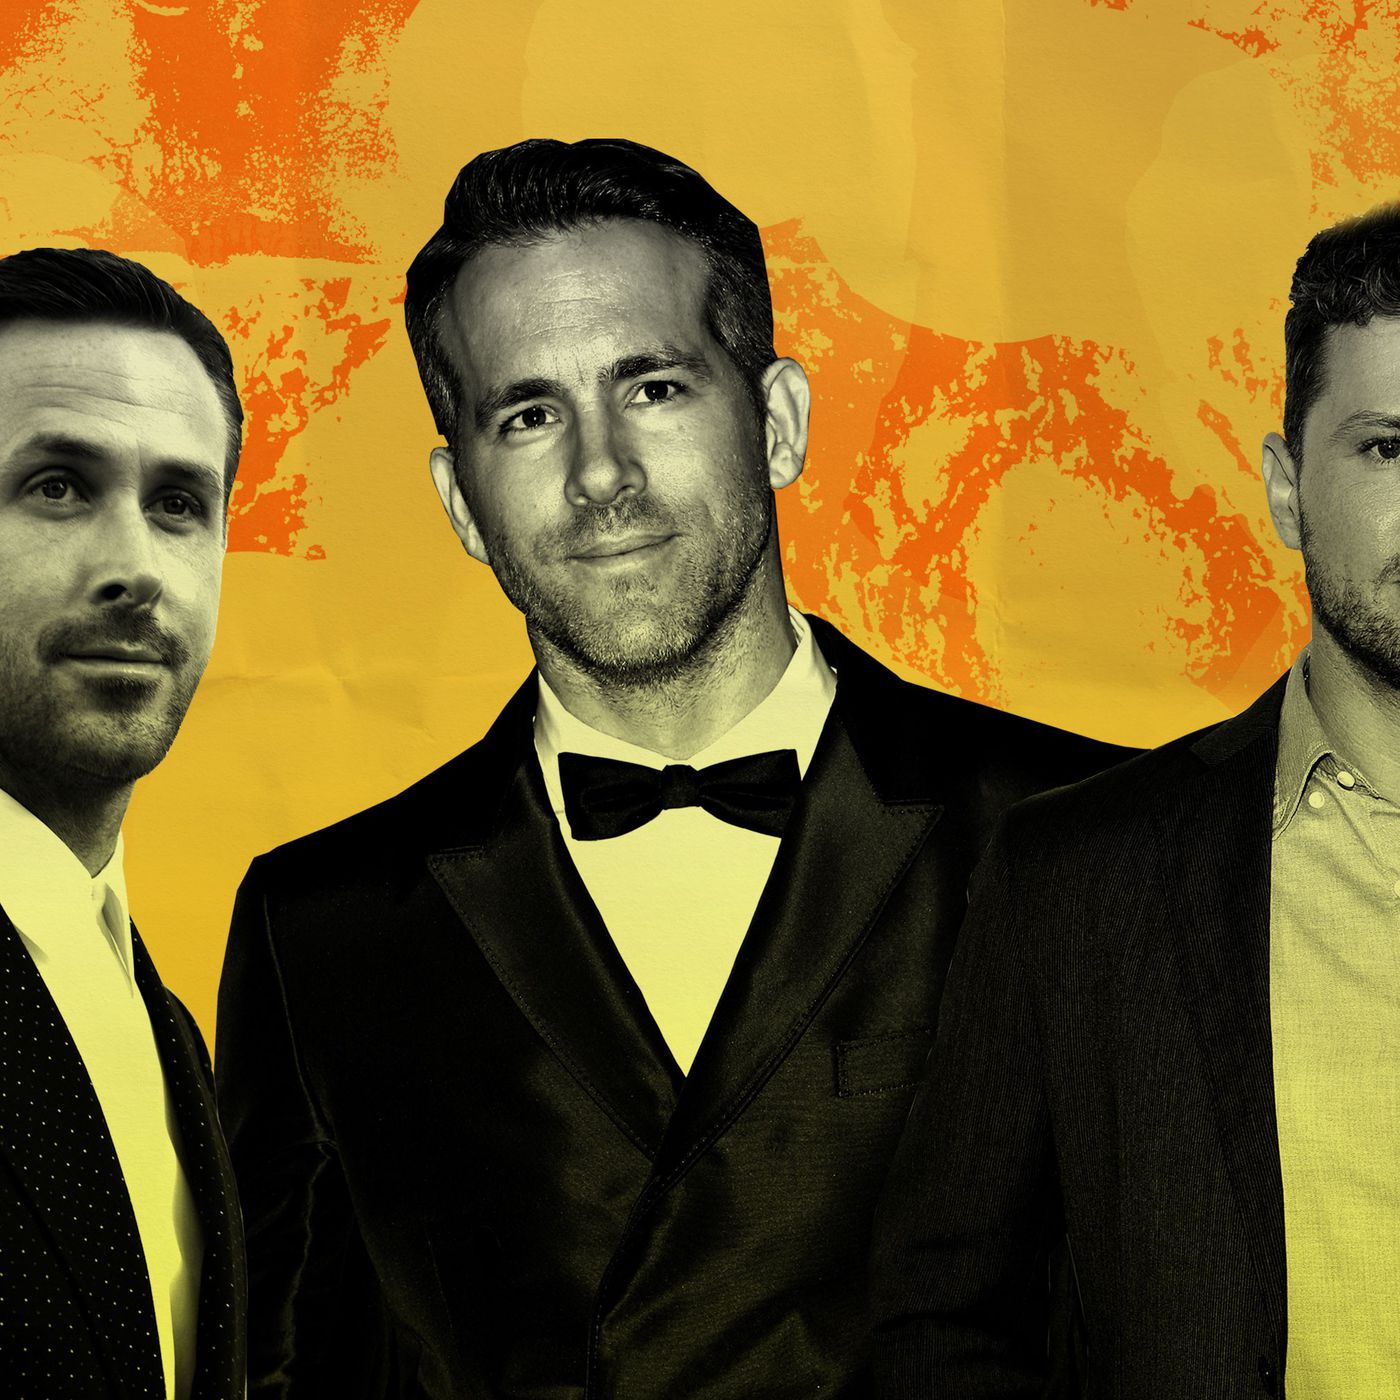 Are Ryan Reynolds And Ryan Gosling The Same Person The Ringer